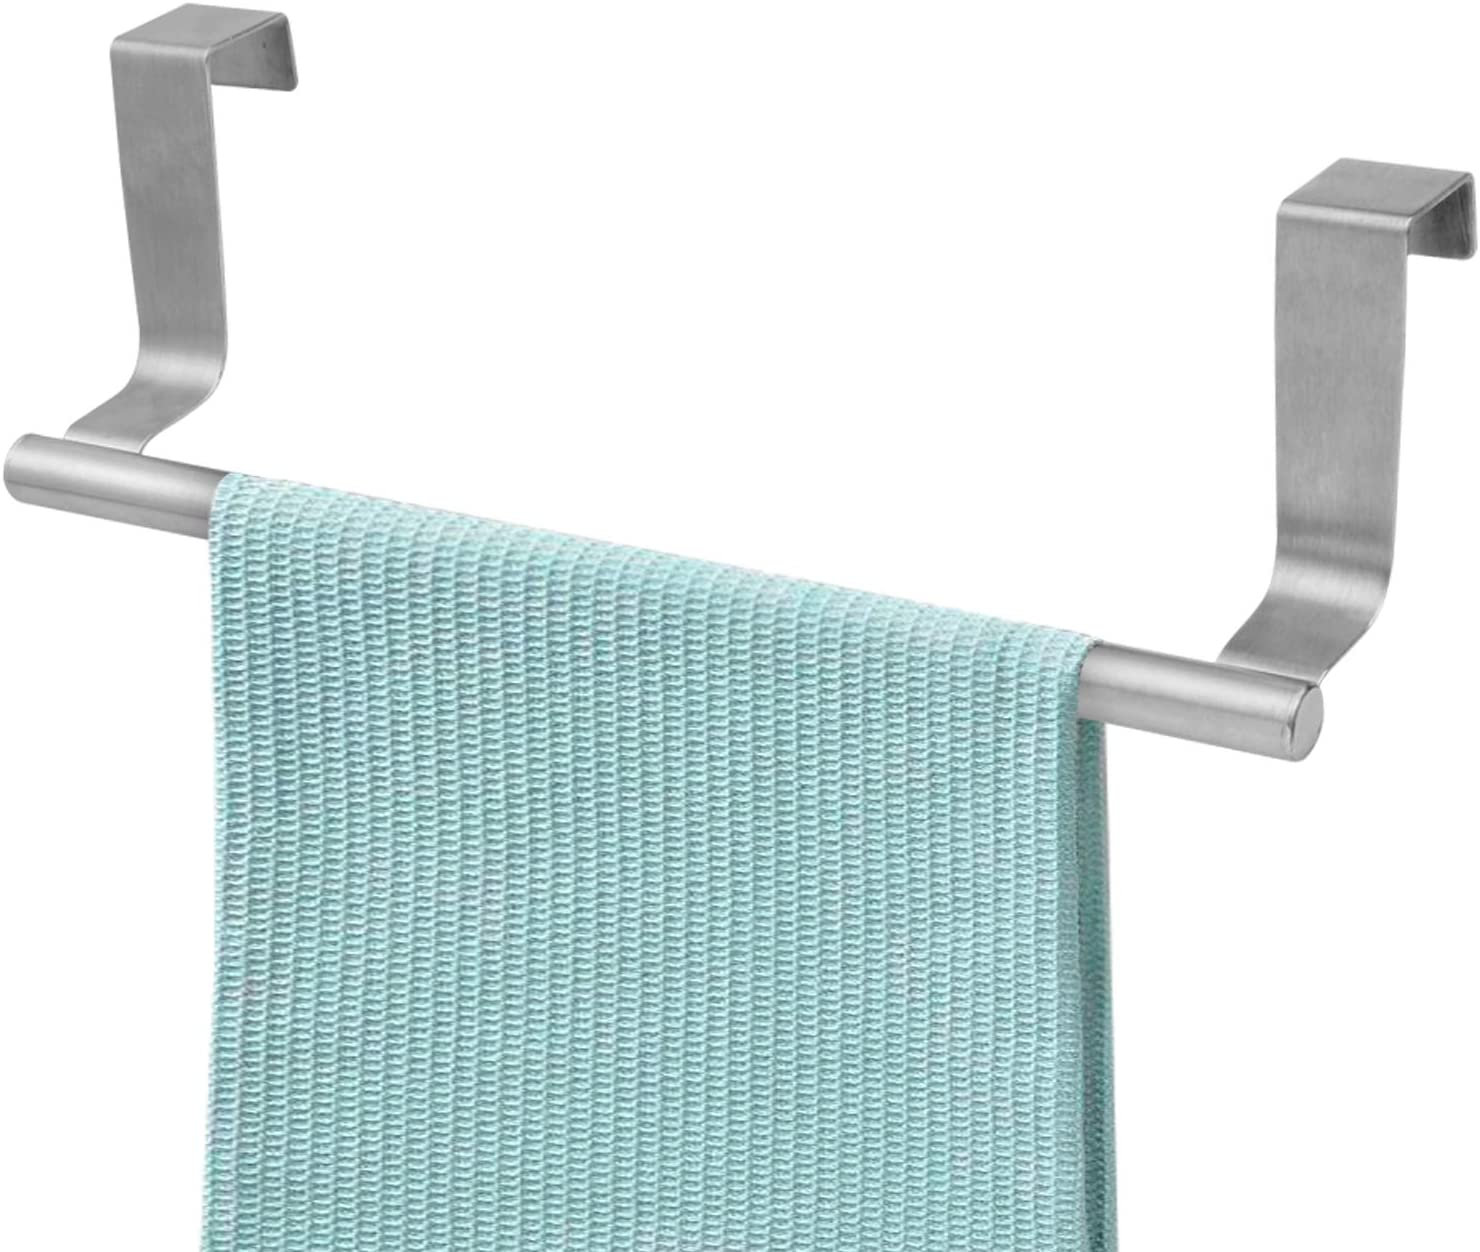 Over The Door 9 Dish Towel Bar Rack Hanger Holder Stainless Steel With 22 Lbs Maximum Load Effortless Installation On Any Bathroom And Kitchen